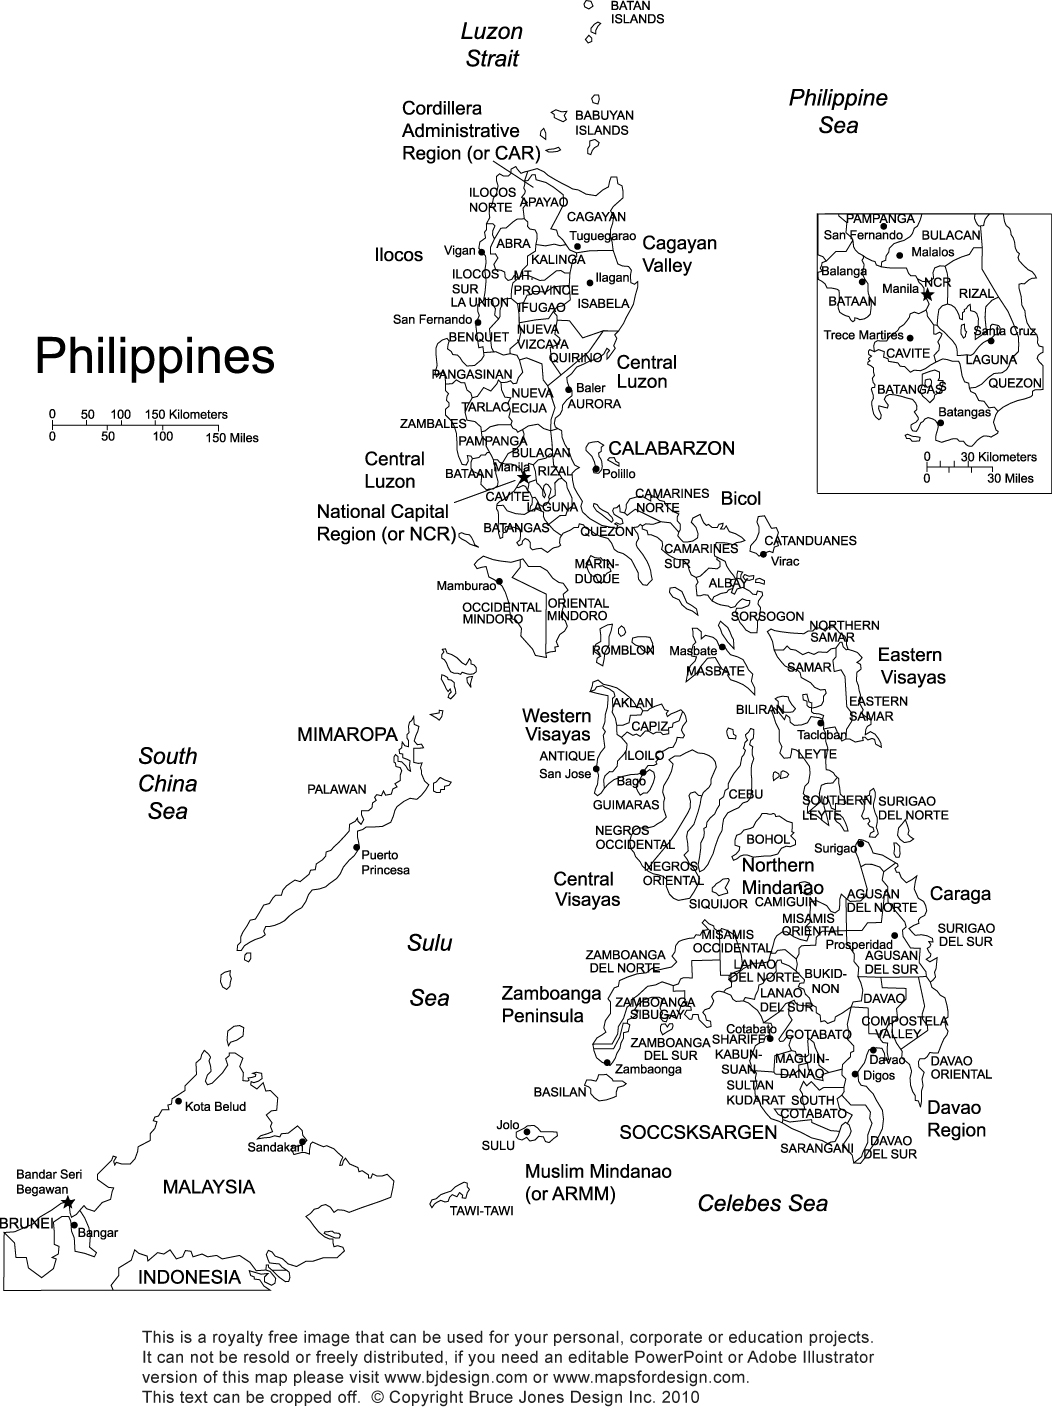 Philippines printable blank map, royalty free, Manila